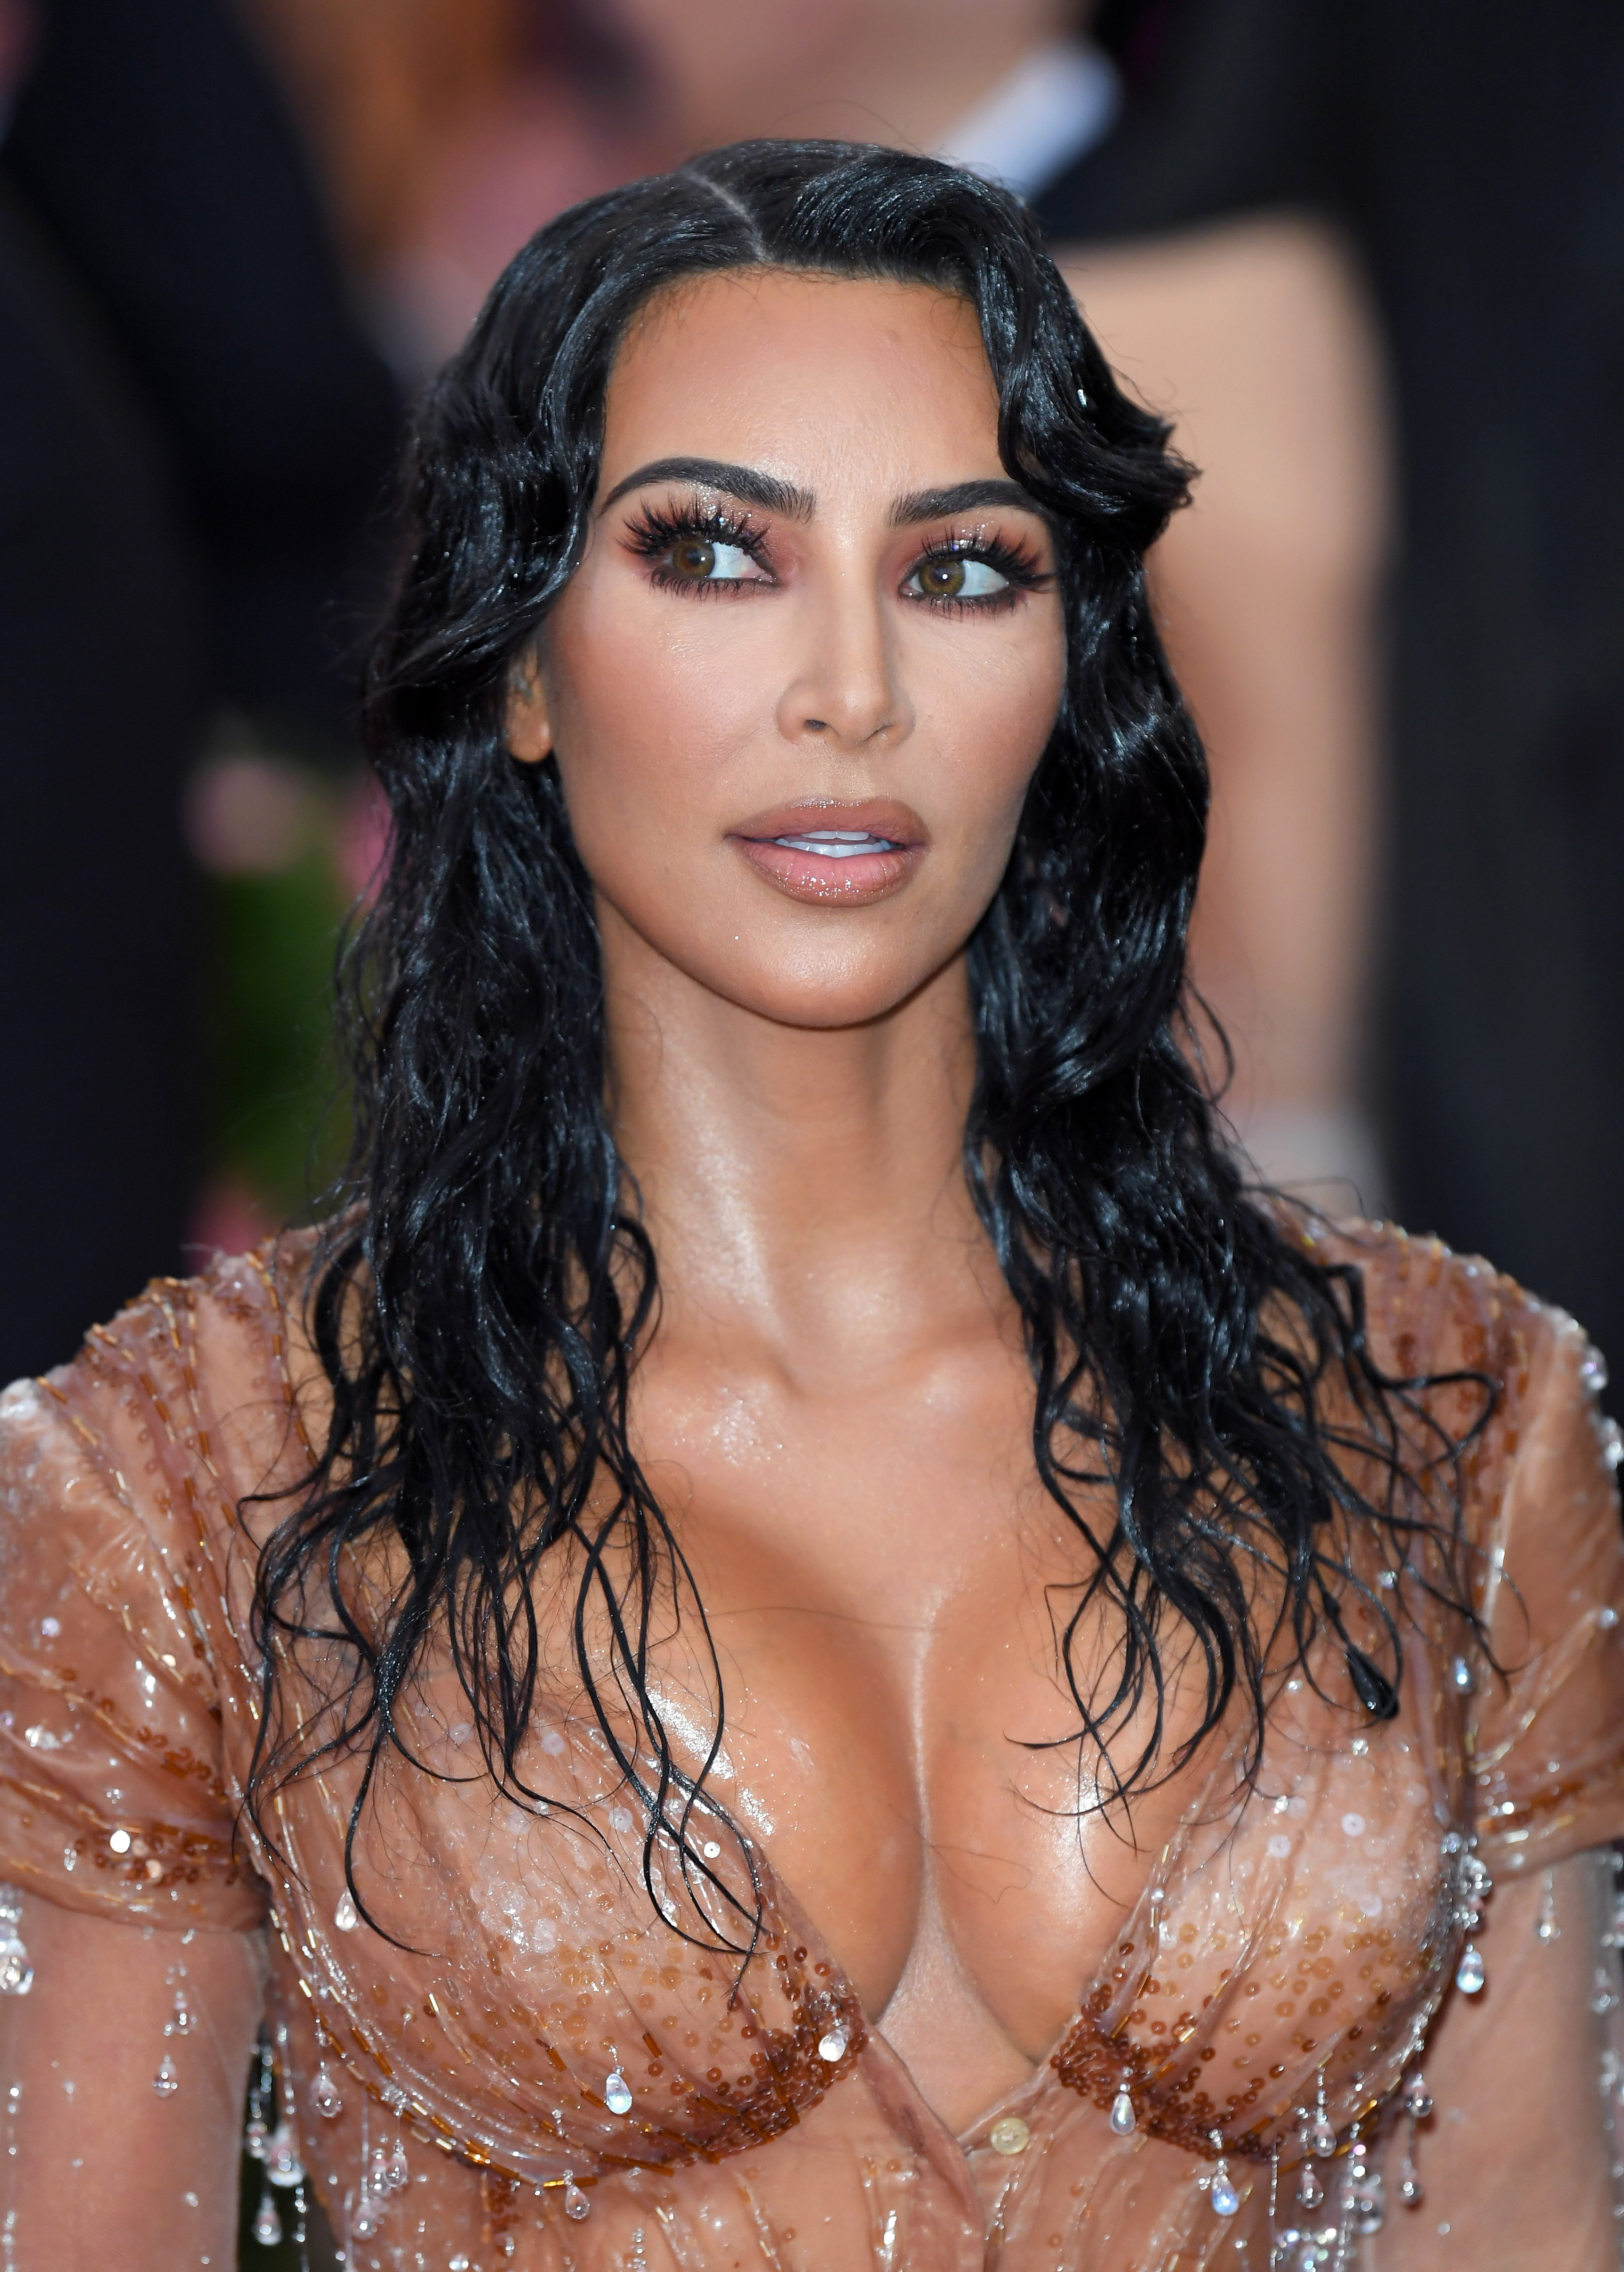 Kim Kardashian West at the 2019 Met Gala at the Metropolitan Museum of Art on May 06, 2019 in New York City.| Source: Getty Images